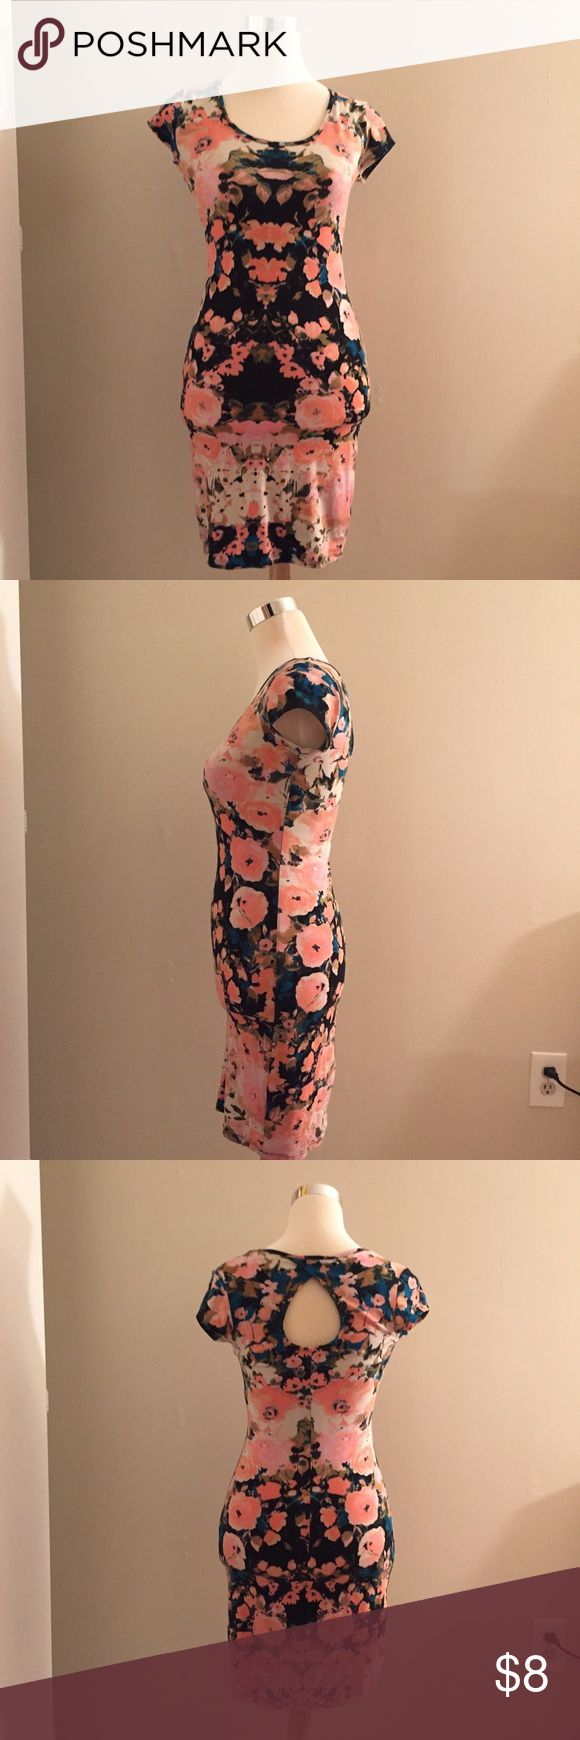 xhilaration Bodycon Floral Dress Floral bodycon dress with key hole in the back.  Cotton Spandex Xhilaration Dresses